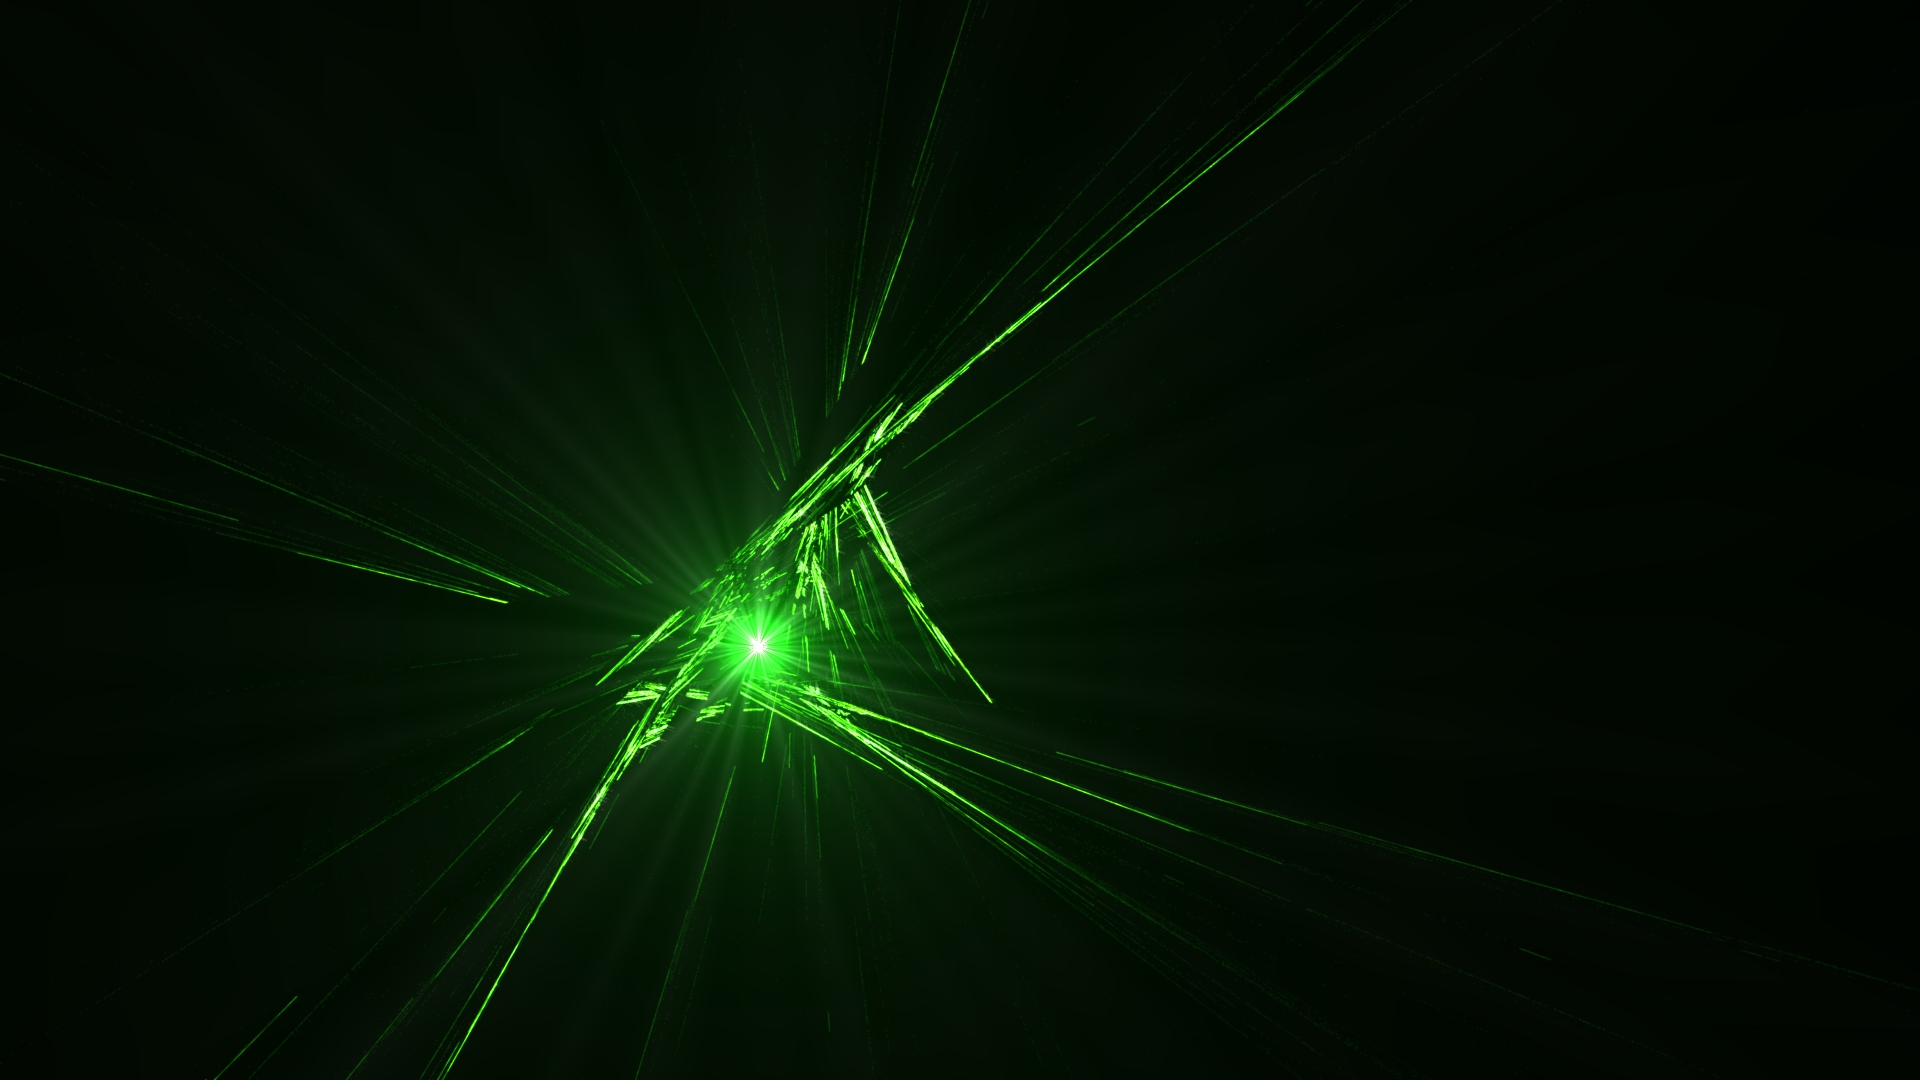 1920x1080 Abstract Green wallpaper 1920x1080